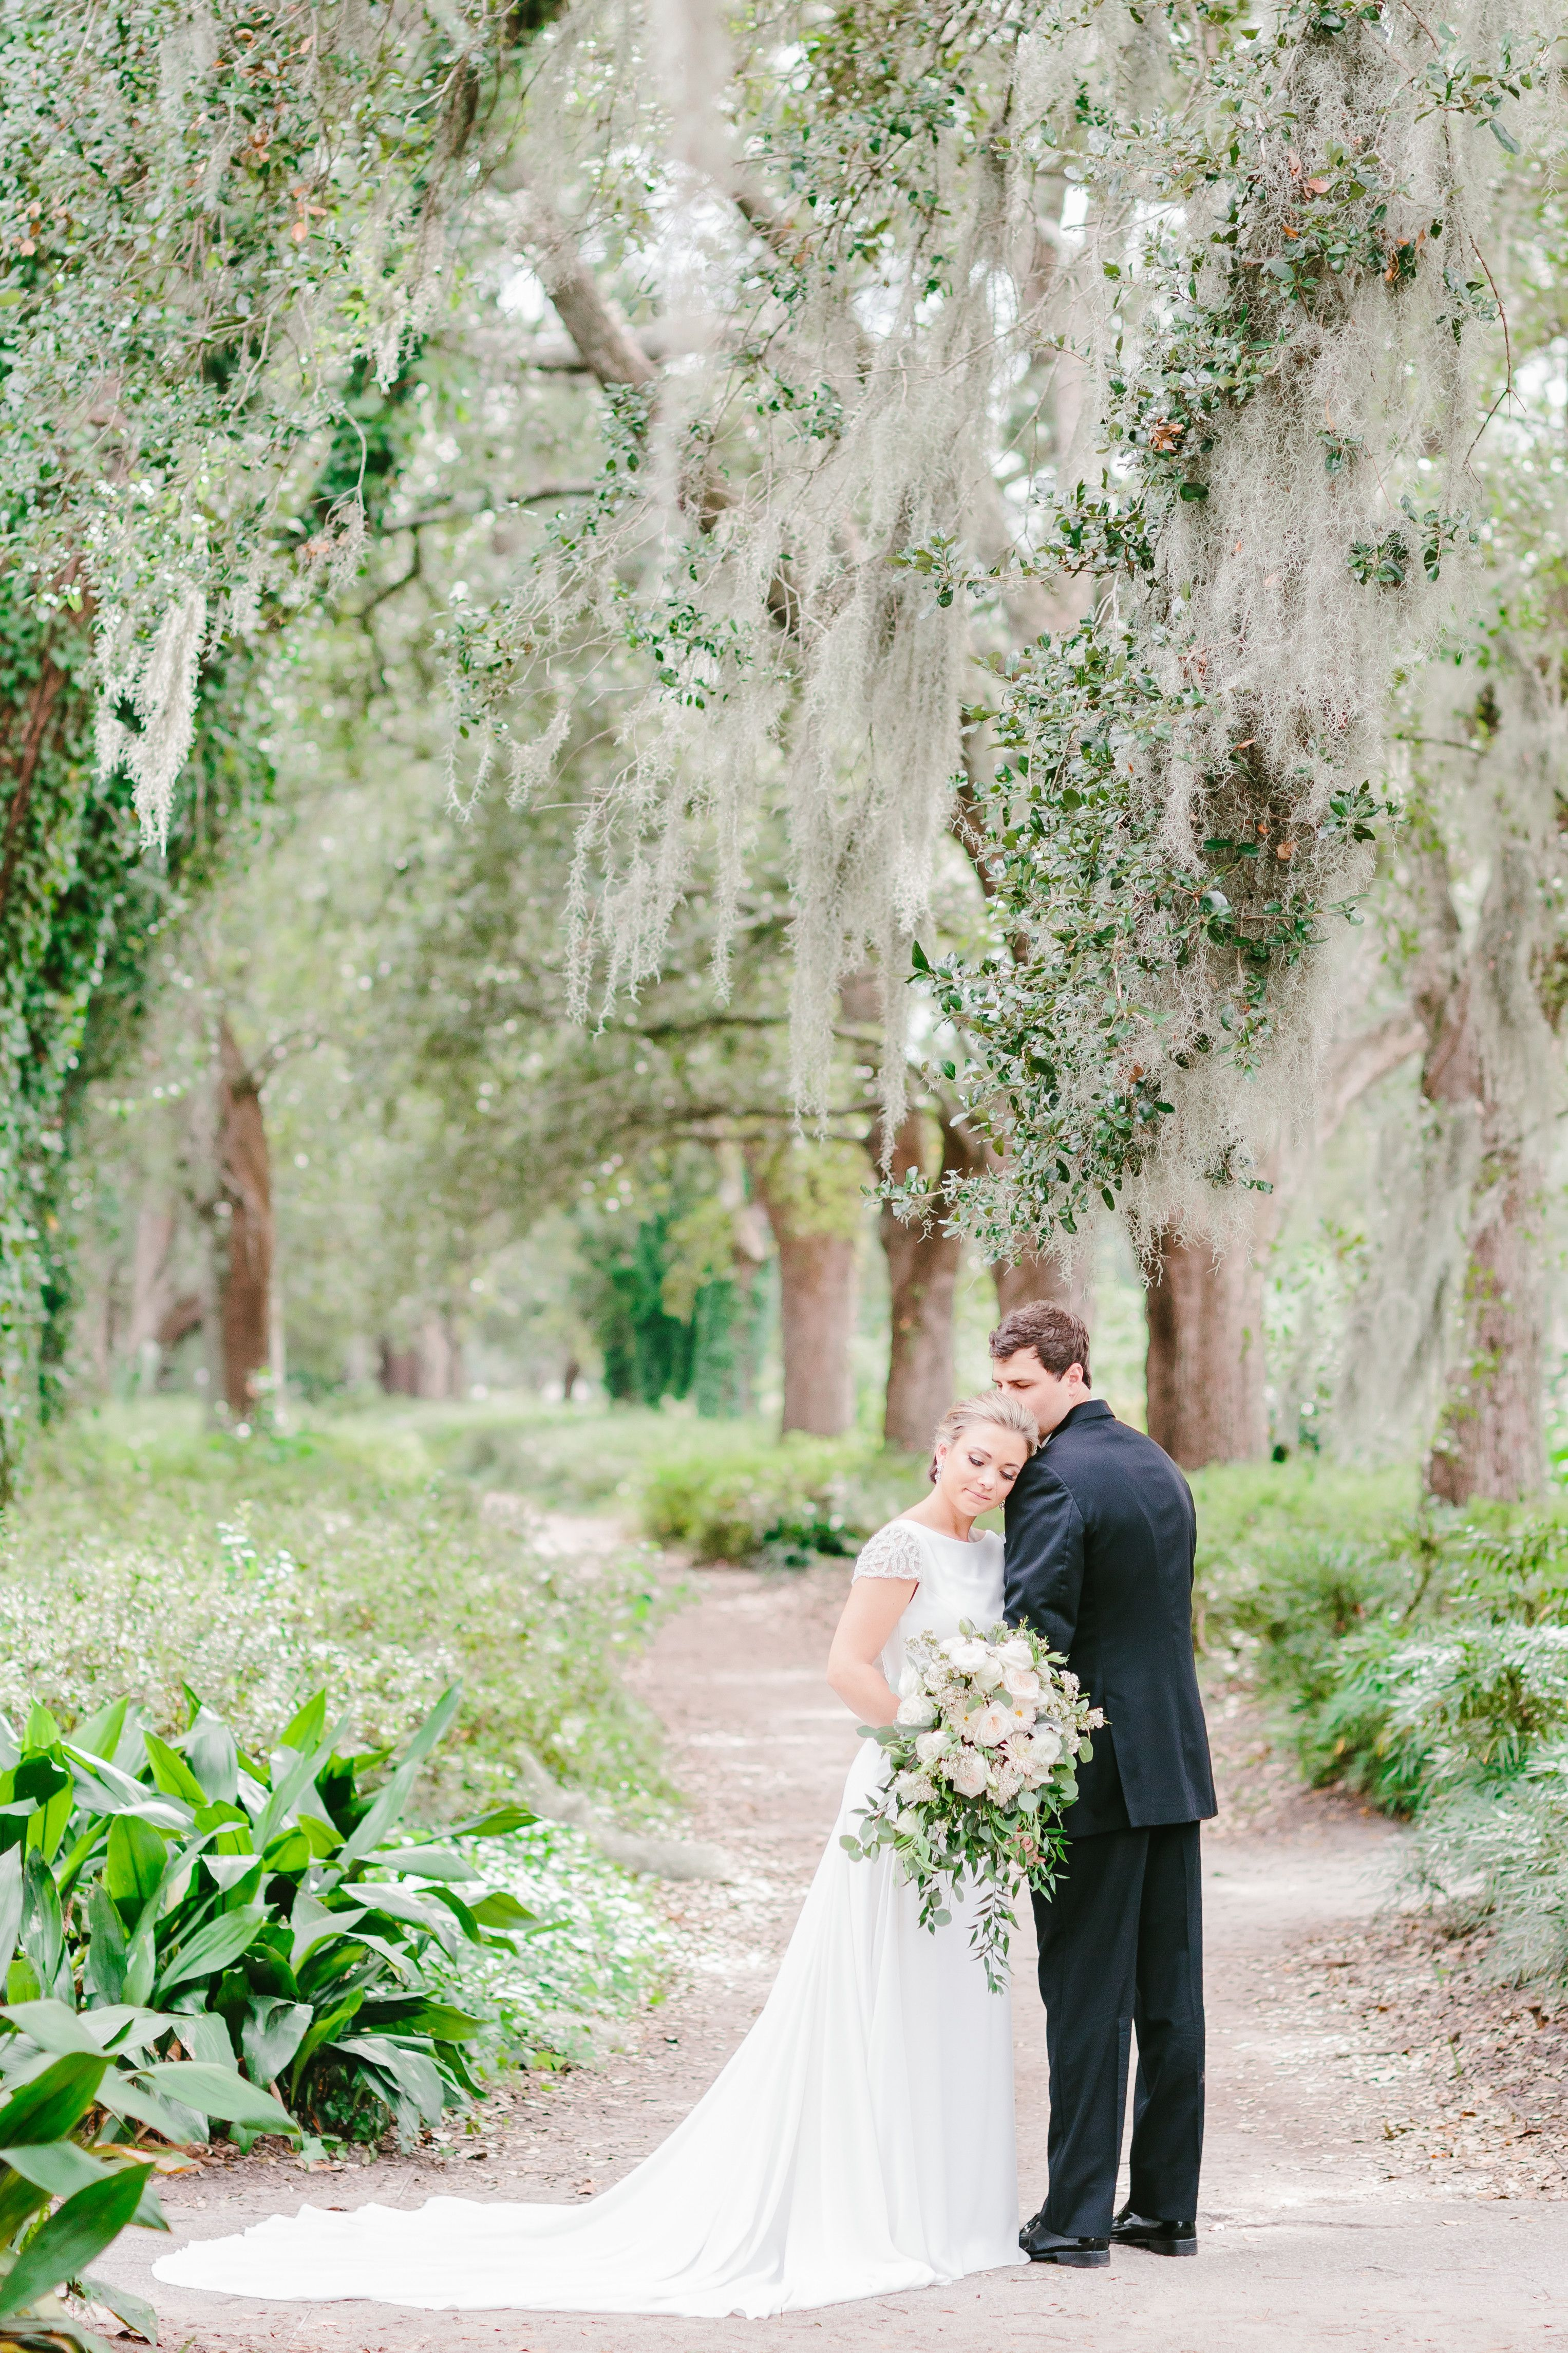 Classic Southern Wedding Photography By Charleston Sc Wedding Photographer And Bustld Vetted Vendor Emily Meeks Photography Wedding Plan Your Wedding Wedding Photos